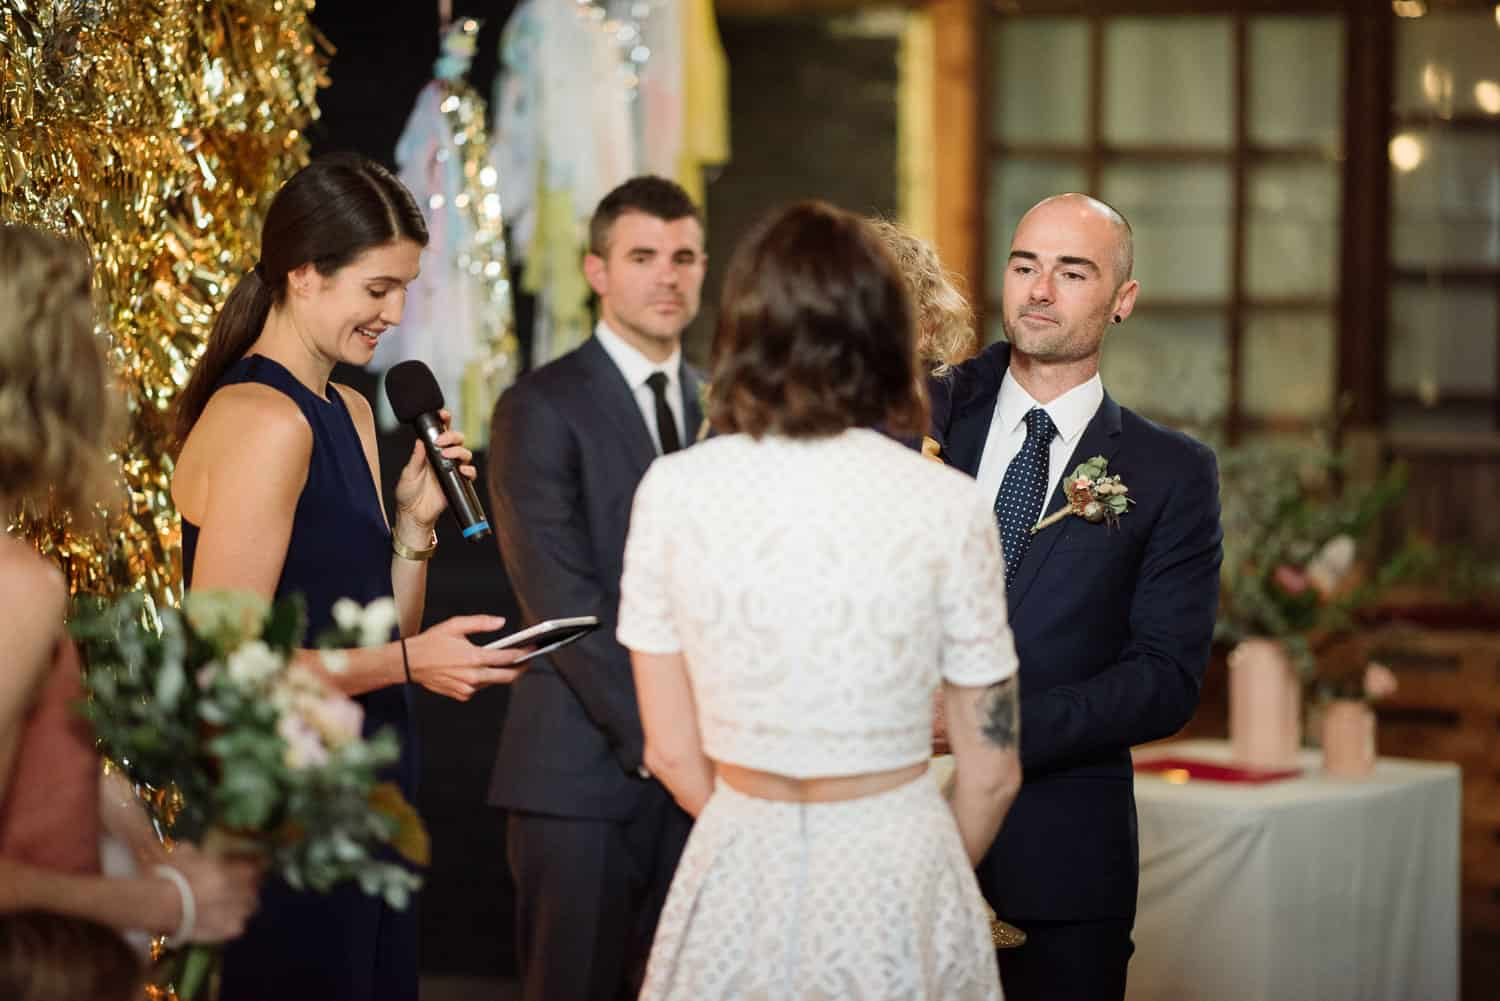 Nina and Josh's intimate wedding